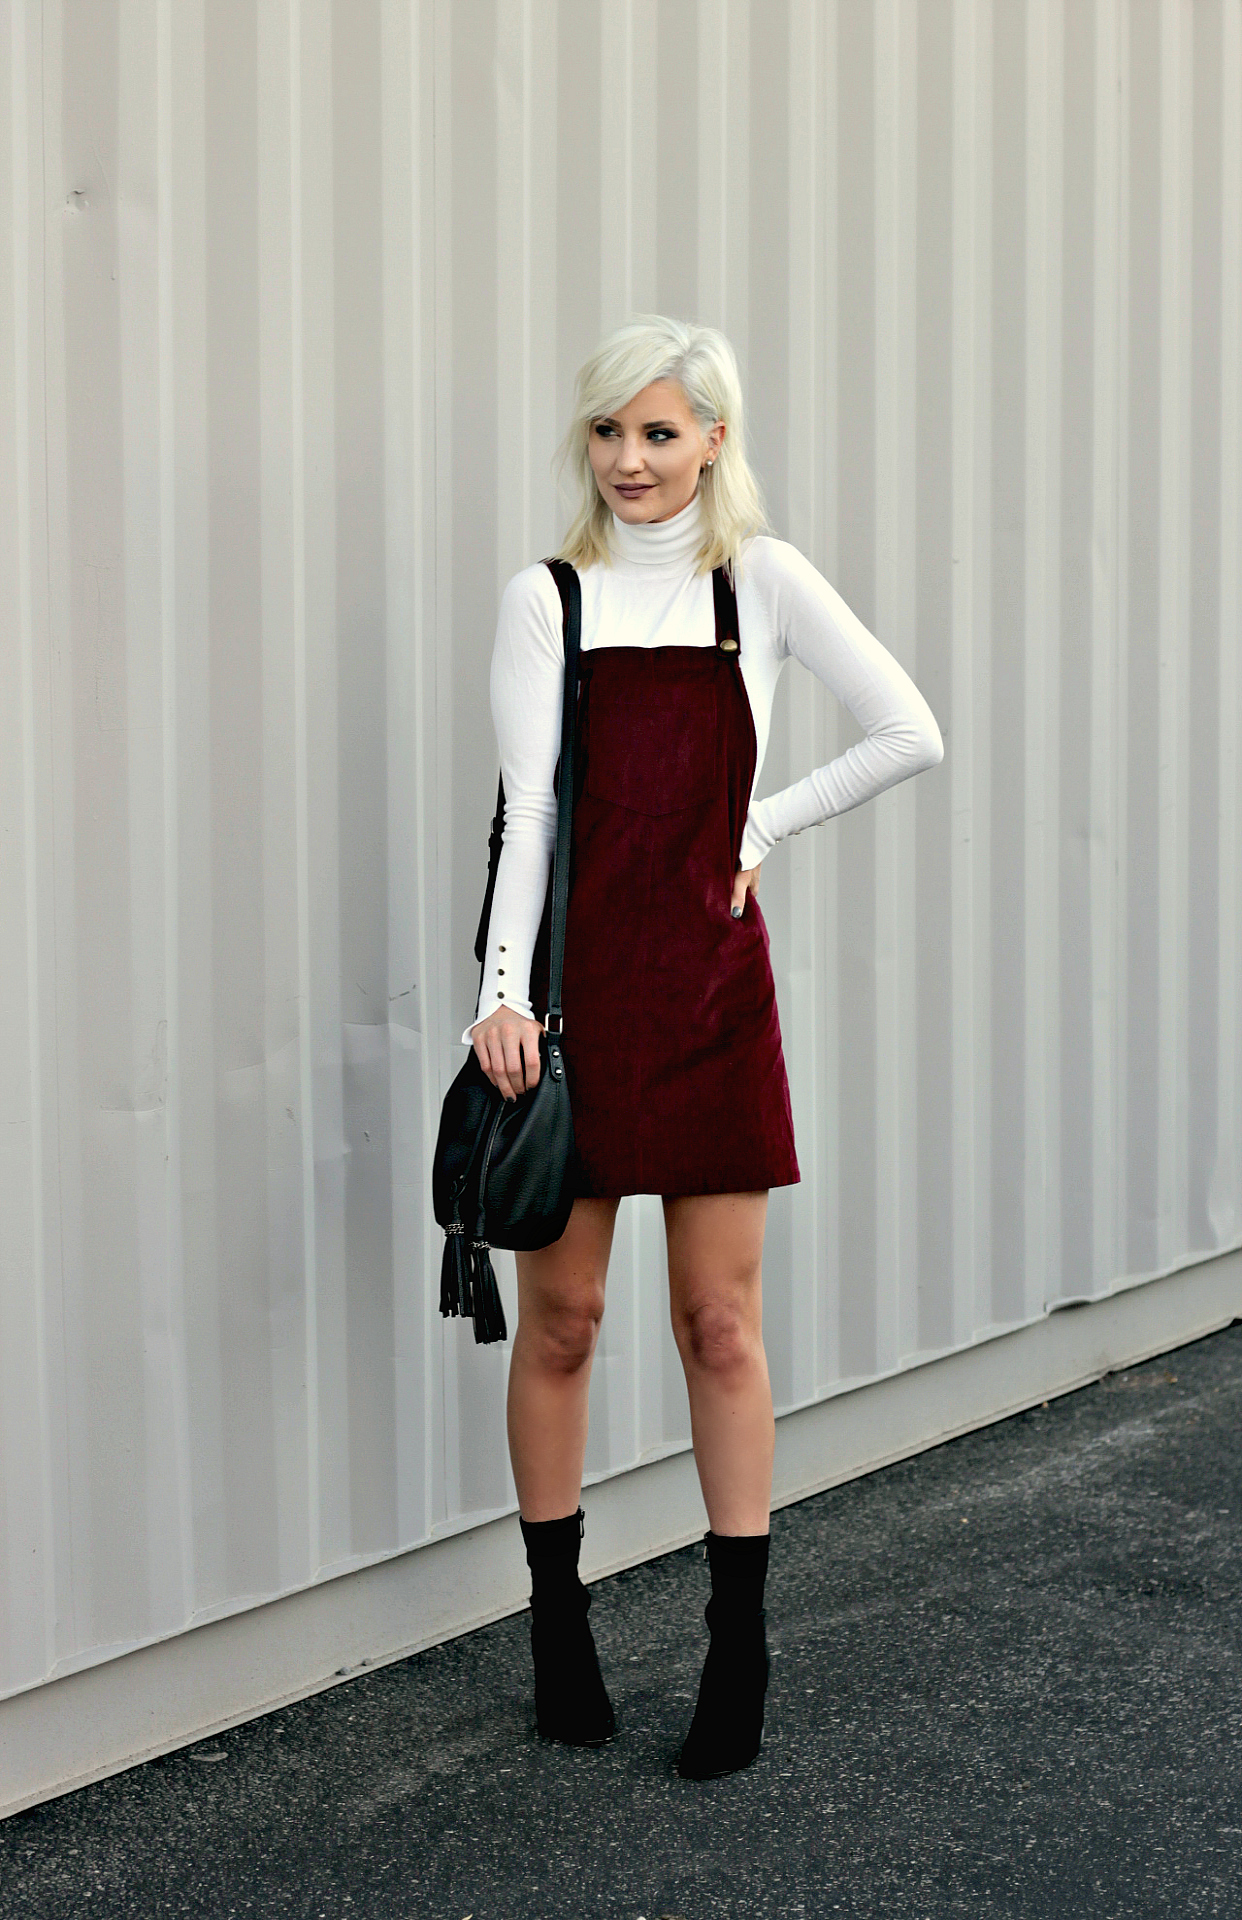 HOW TO STYLE AN OVERALL DRESS